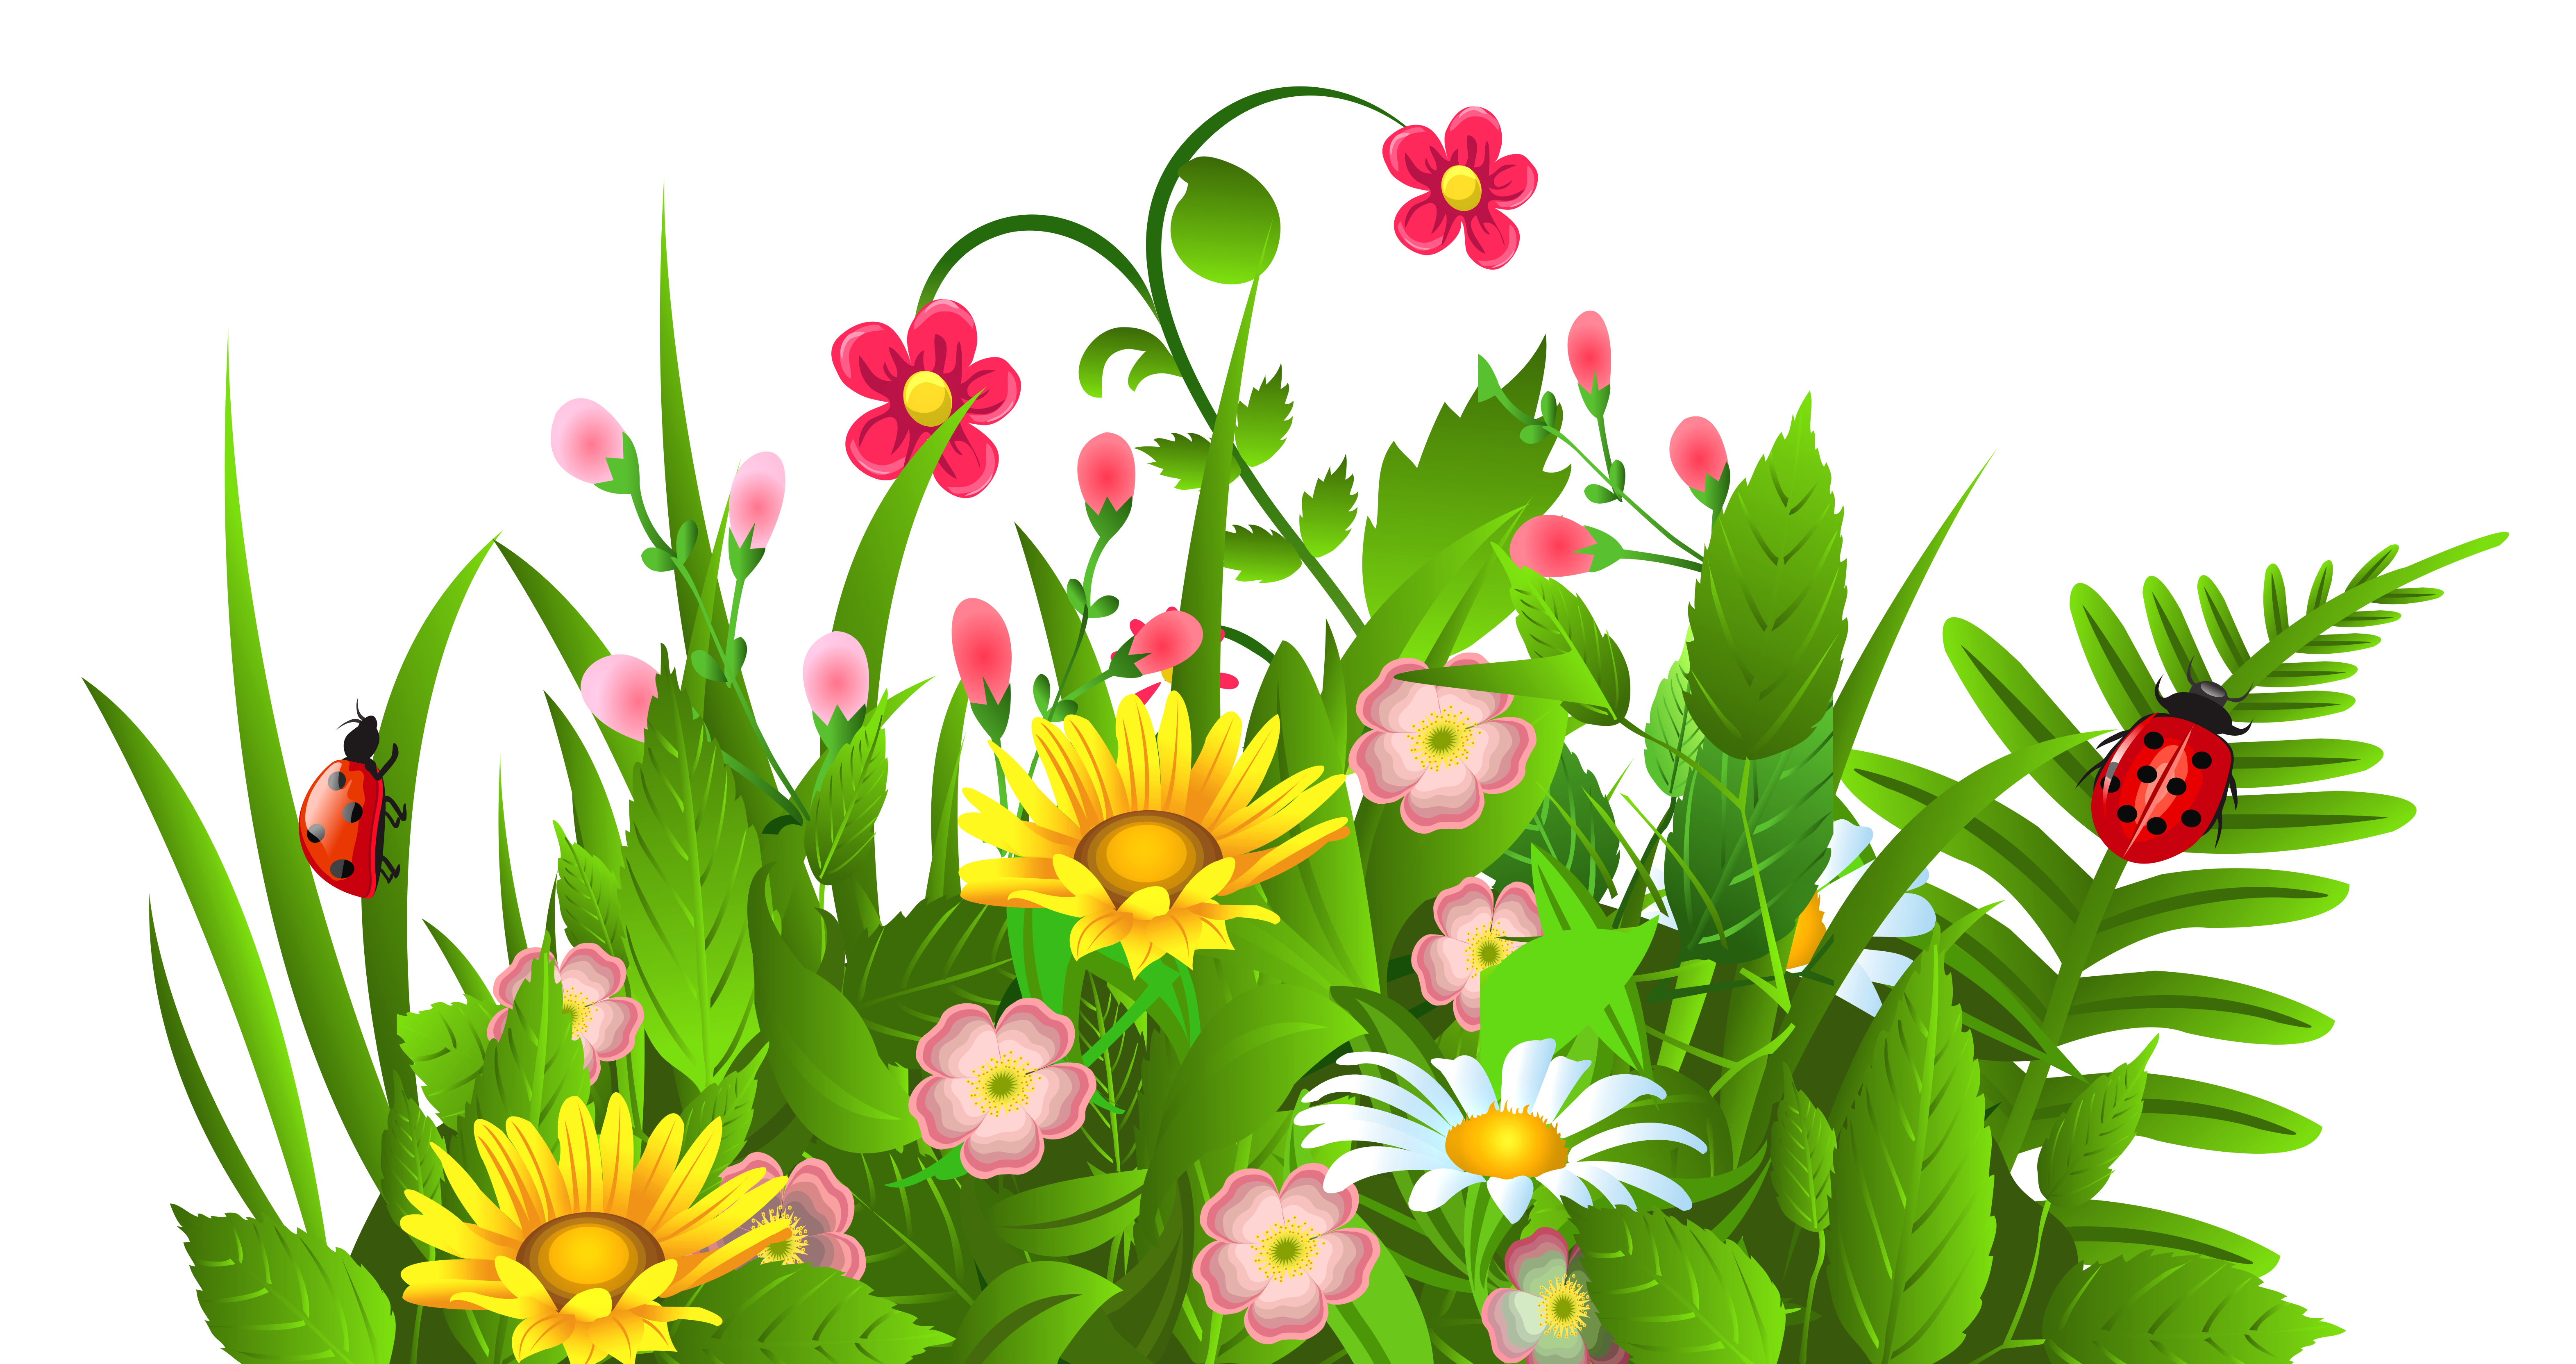 free clipart images of flowers flower clip art pictures image 1  [ 6287 x 3328 Pixel ]